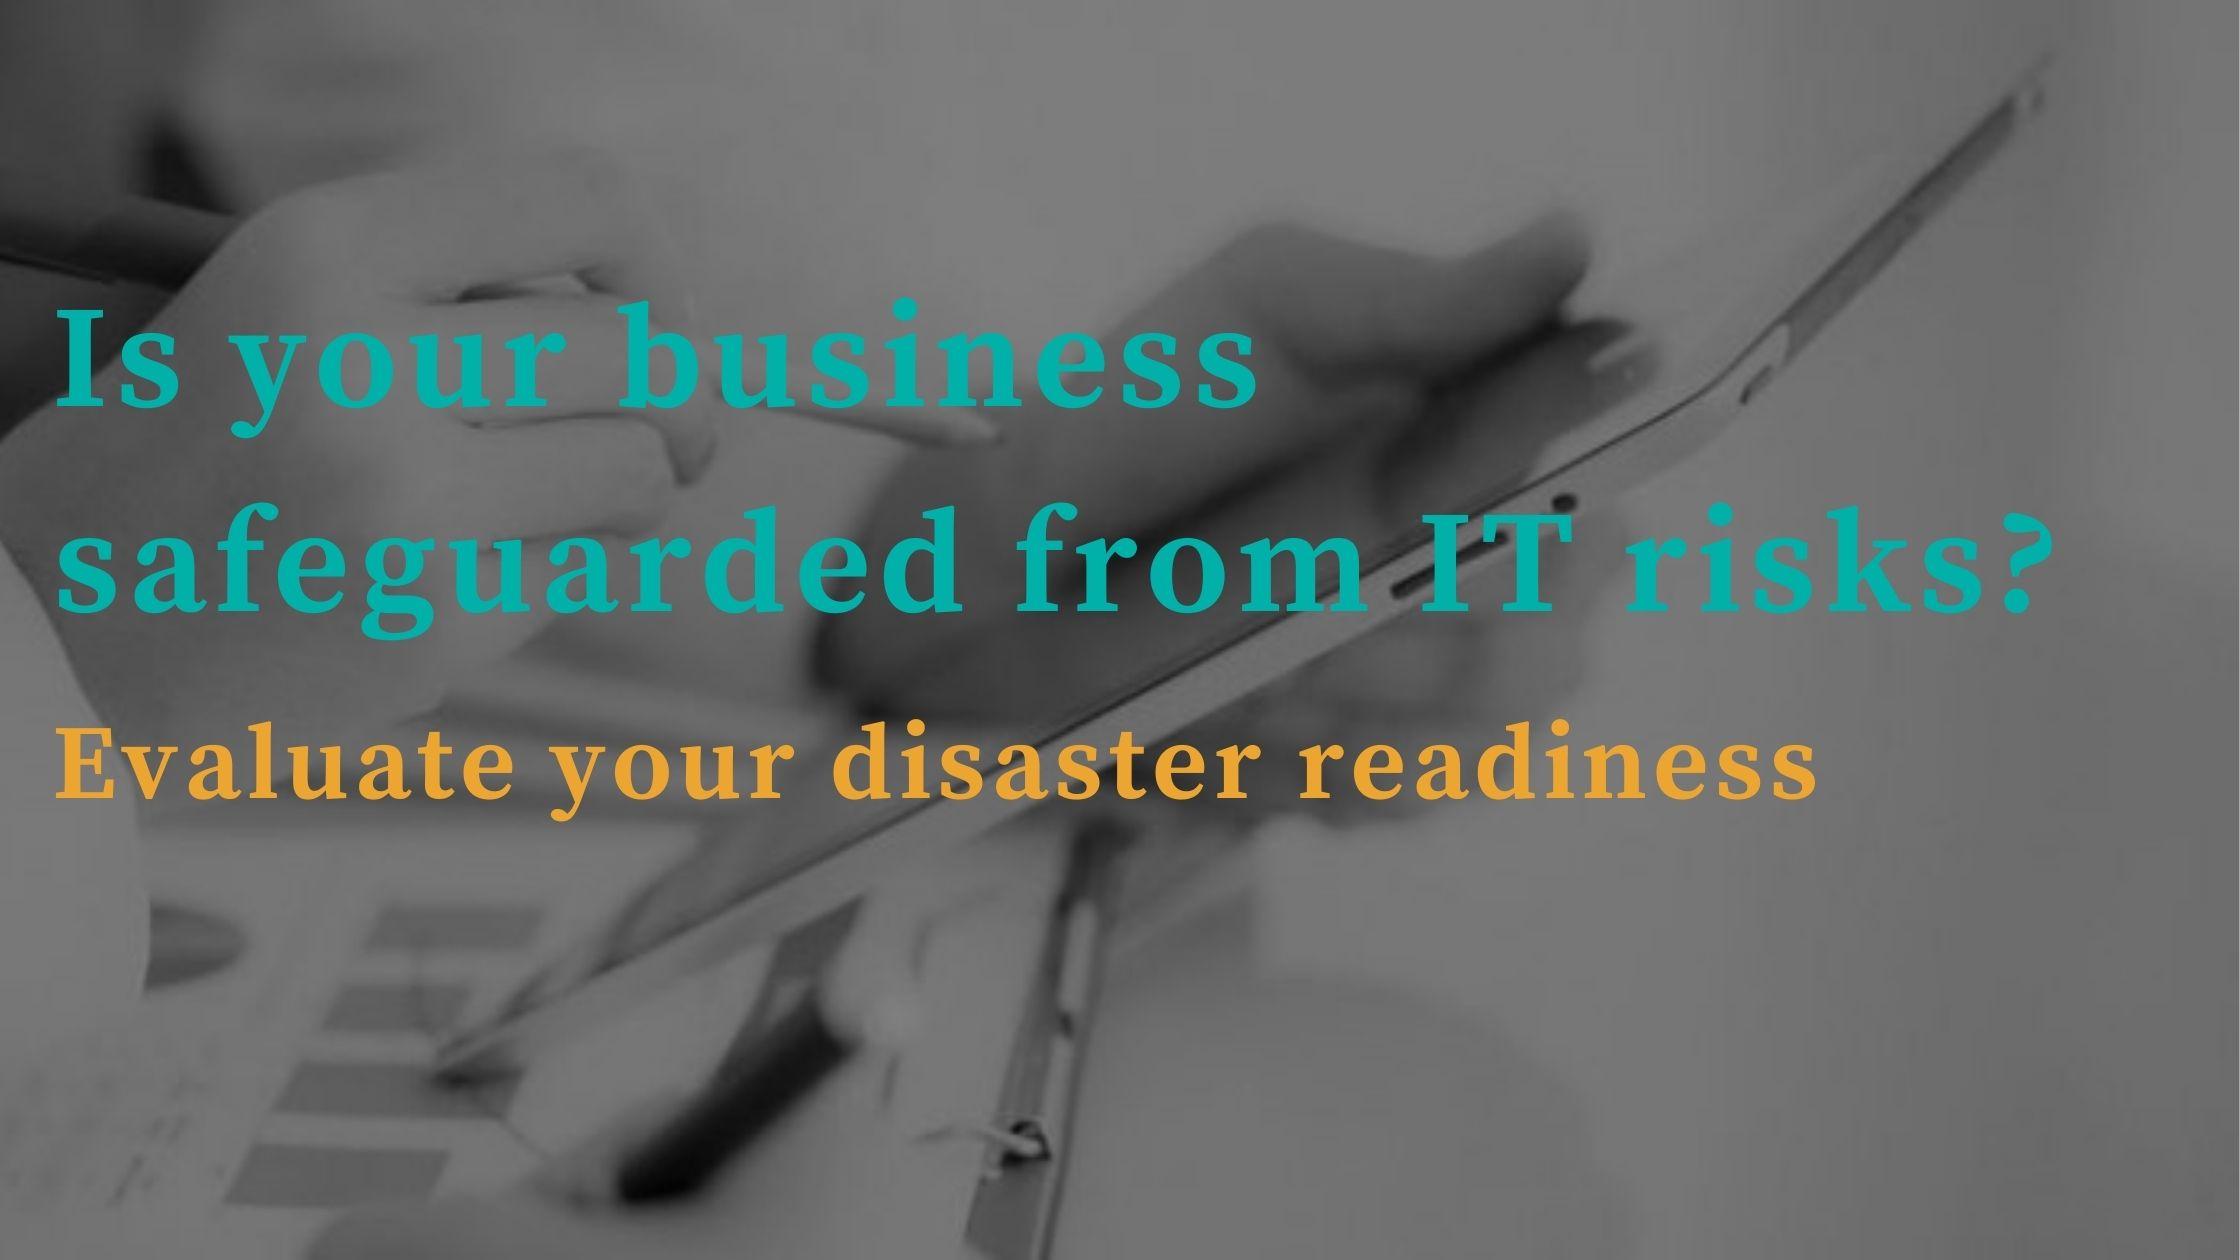 [CHECKLIST] Evaluate & Improve your IT Disaster Recovery Readiness